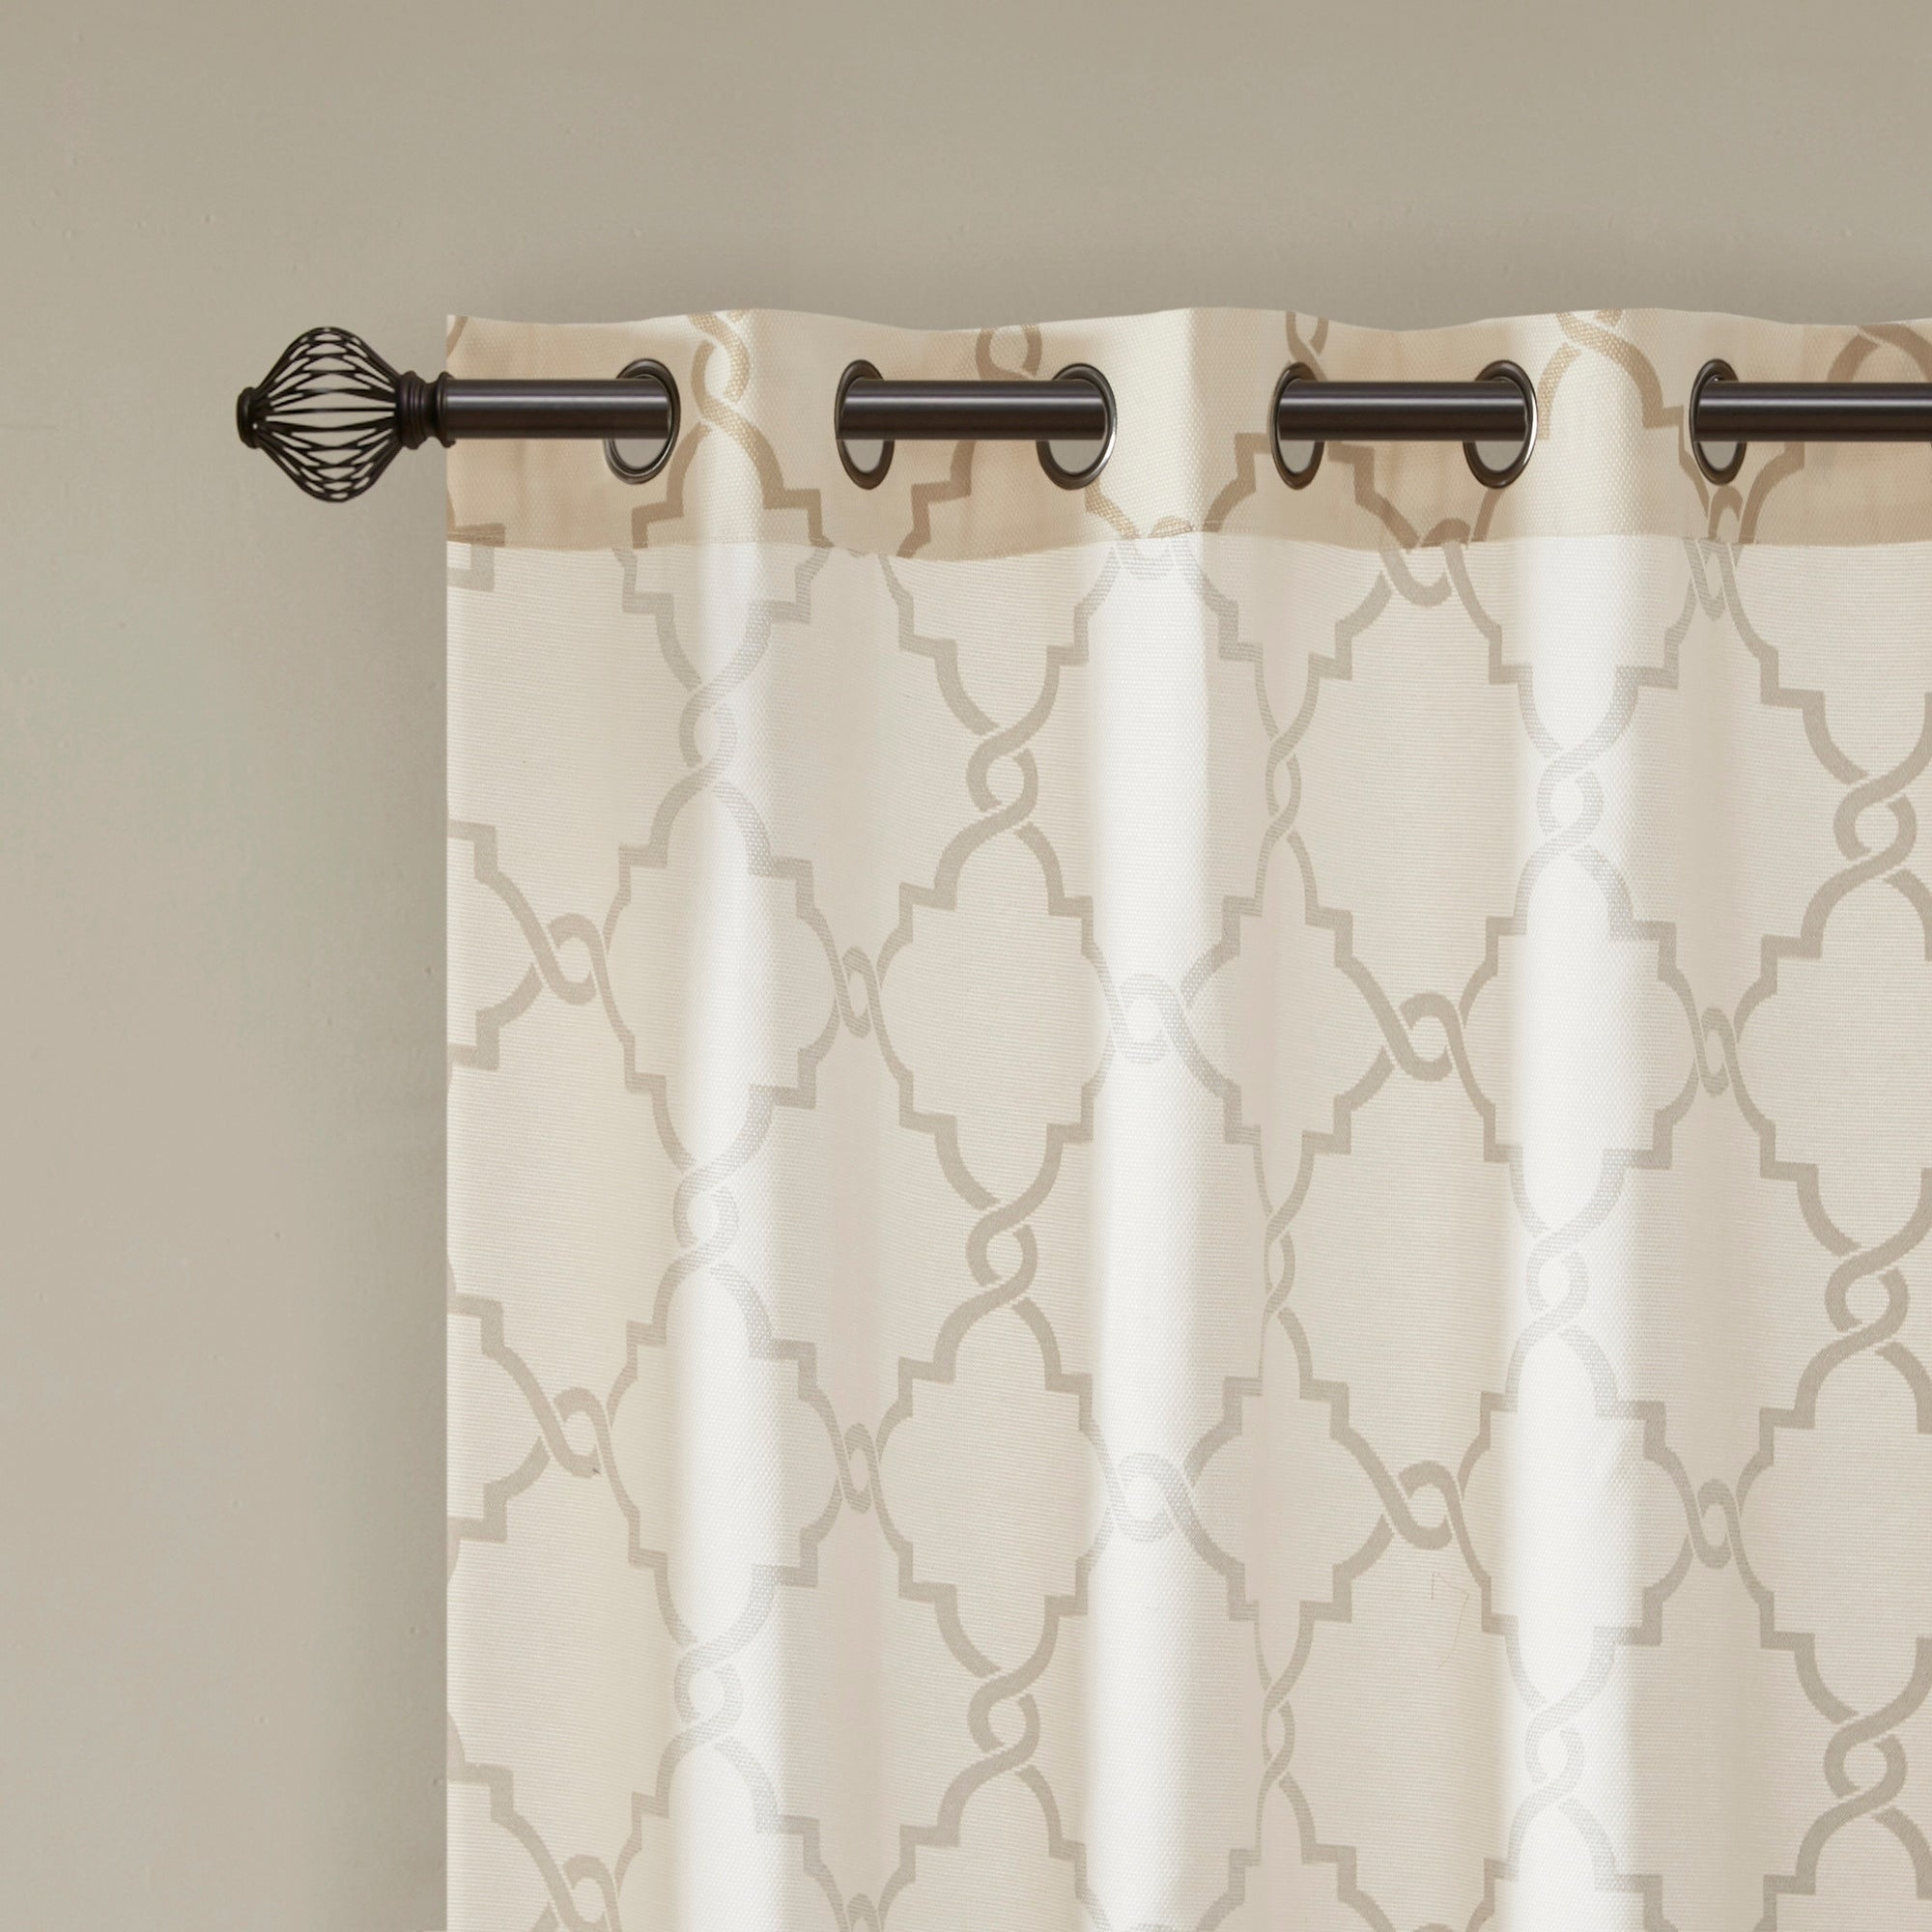 Madison Park Westmont Fretwork Print Pattern Single Curtain Panel Intended For Fretwork Print Pattern Single Curtain Panels (View 7 of 20)